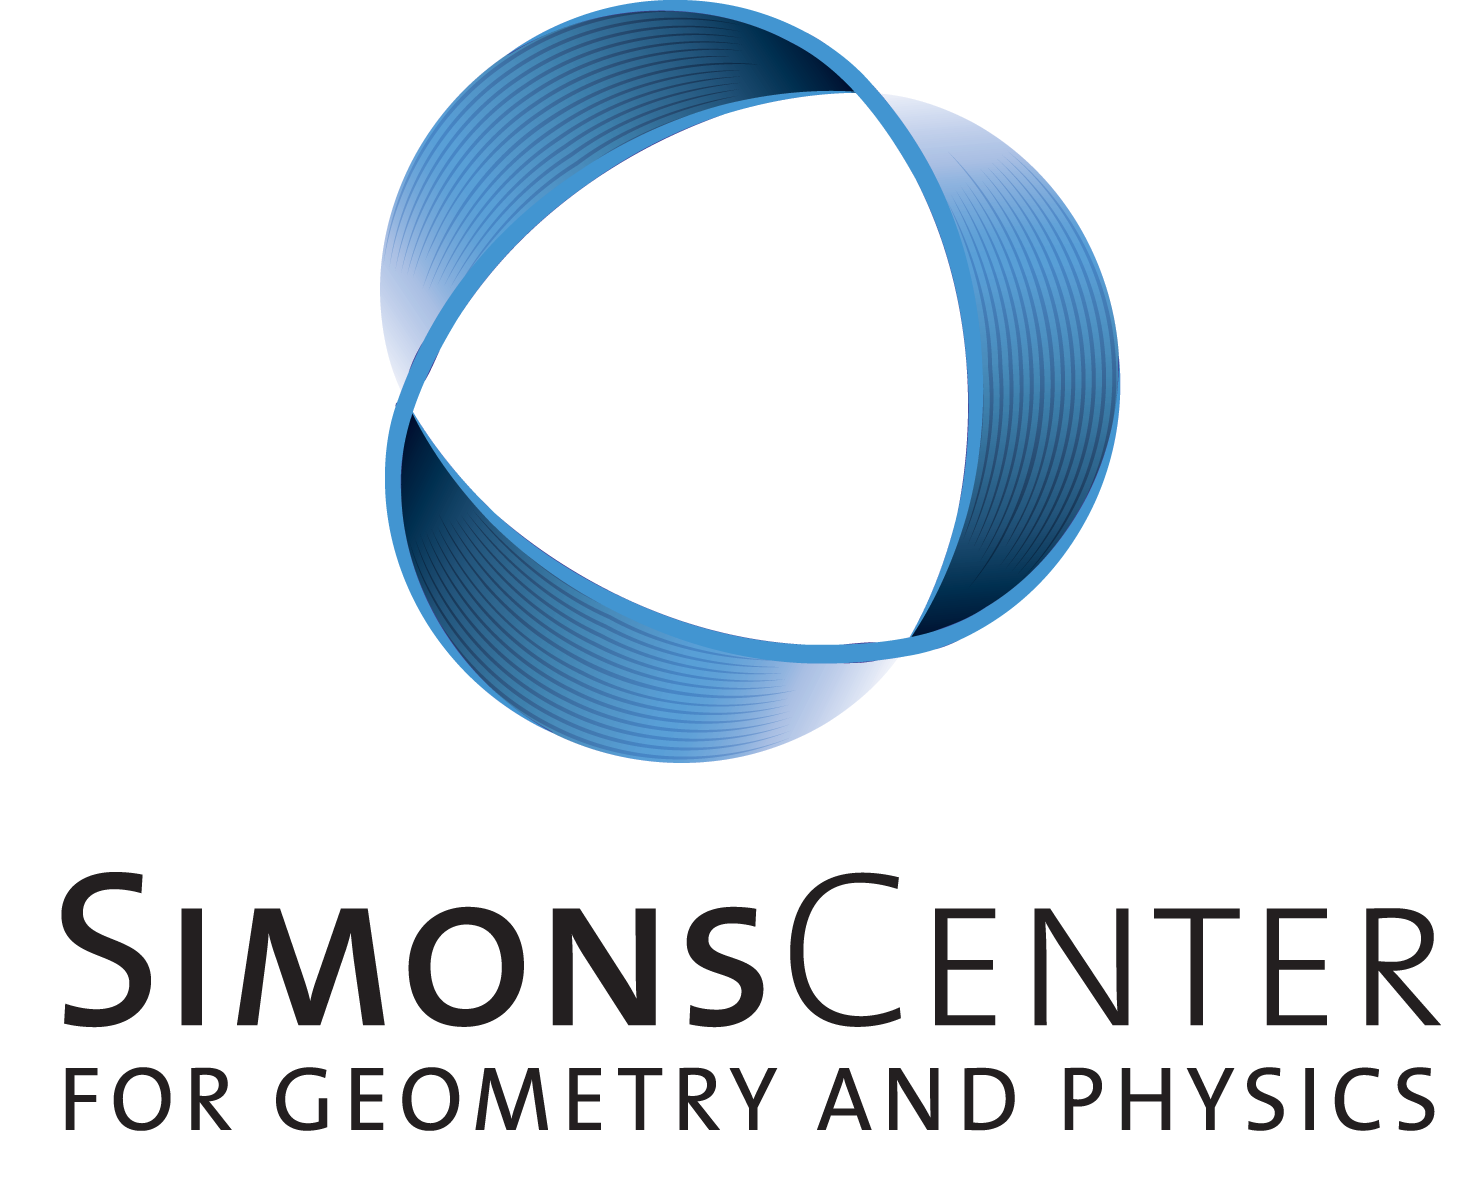 SimonsCenter-Large.png